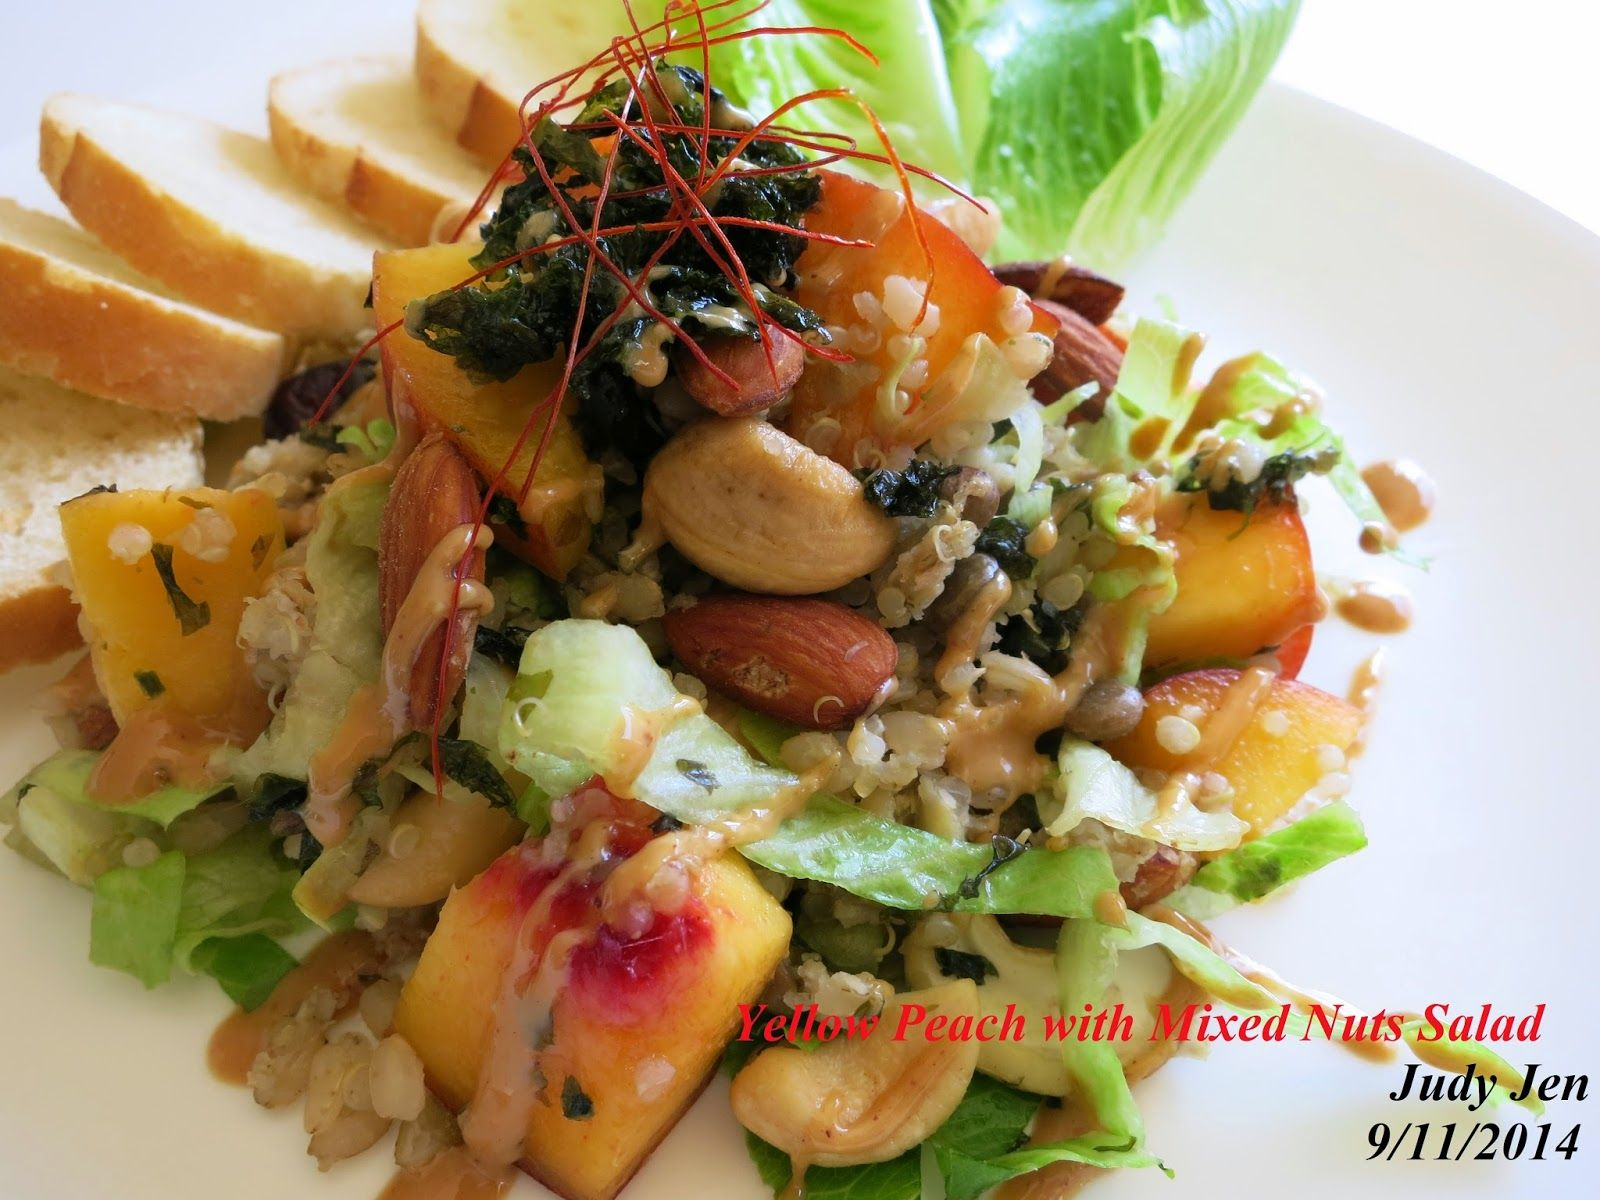 C.A.K.E.: 健康餐Healthy Meals有機黃桃核果沙拉 Organic Yellow Peach with Mixed Nuts Salad 9/11/2014